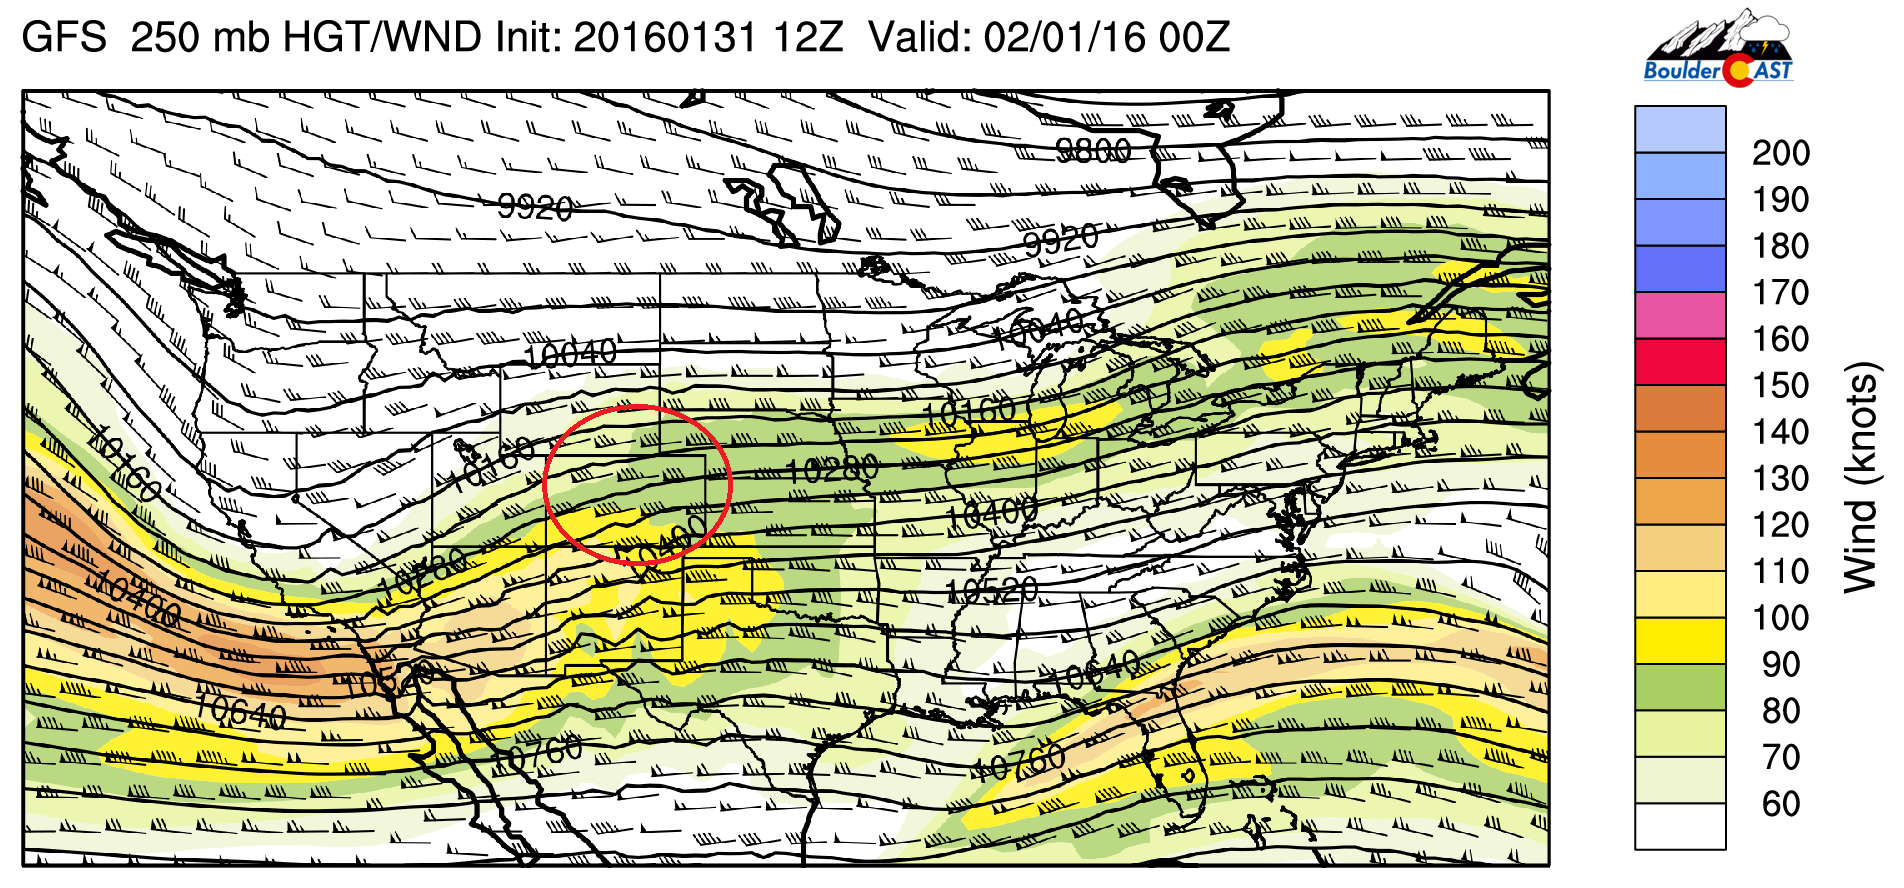 GFS 250 mb height and wind forecast for tonight